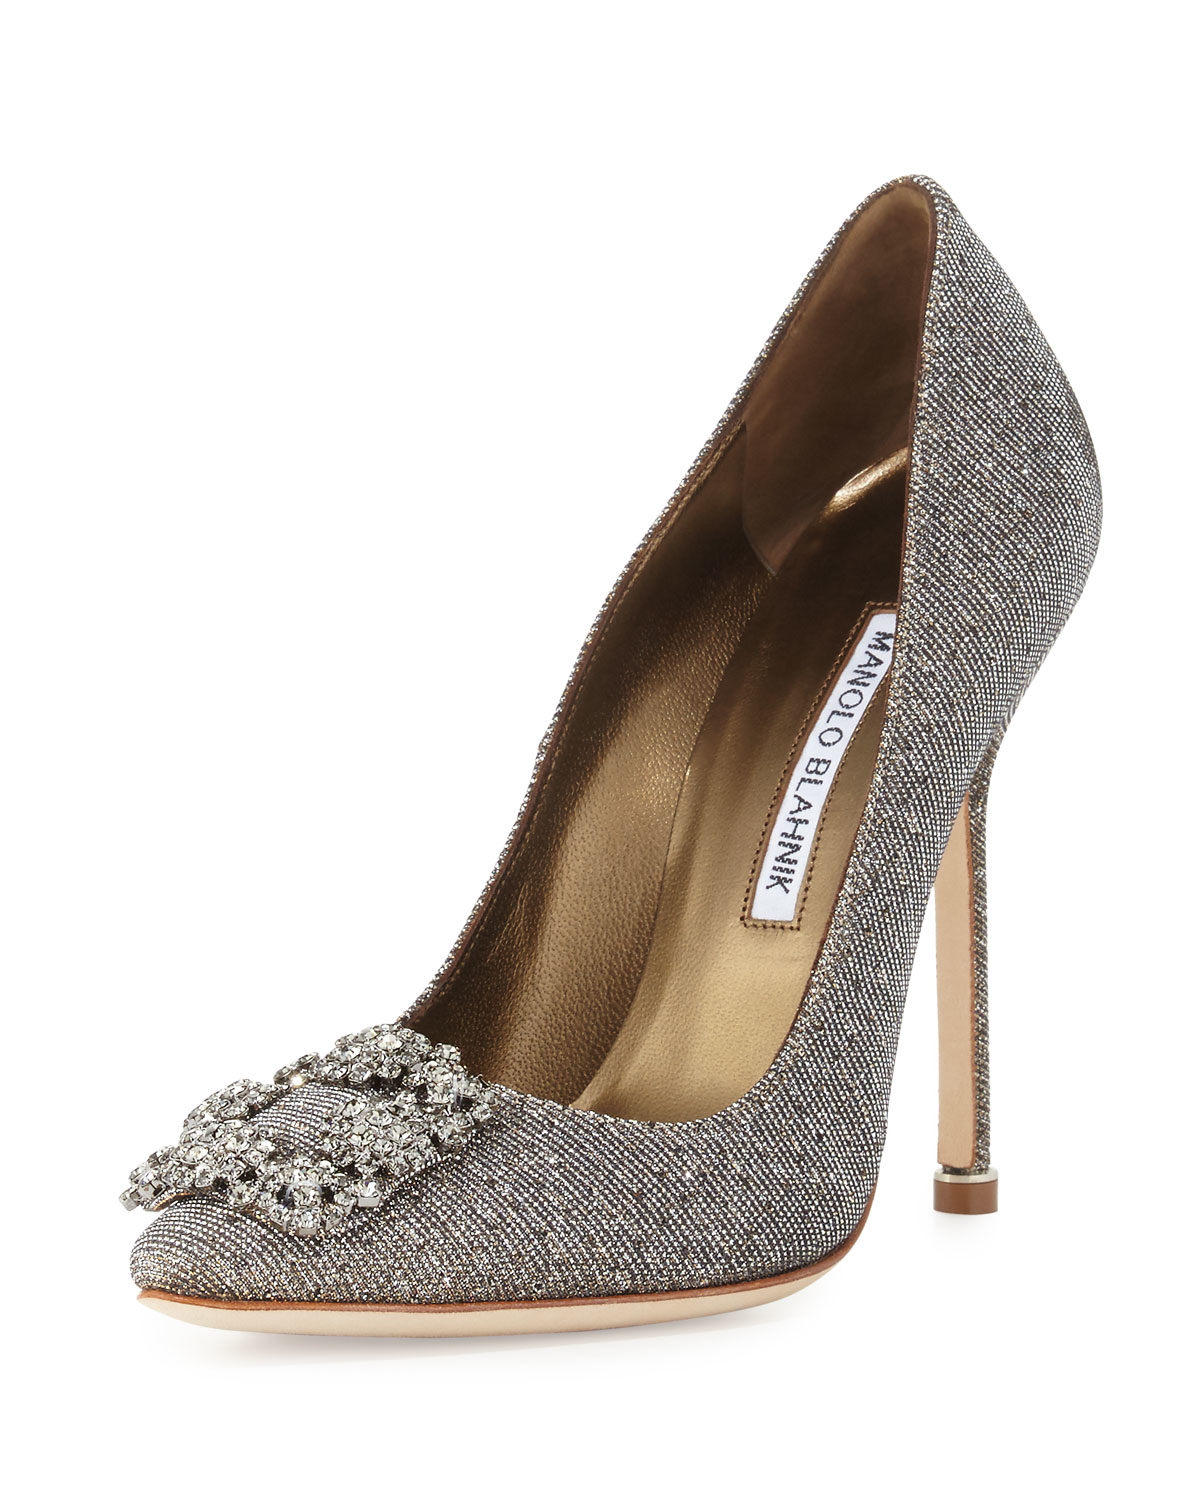 Manolo blahnik hangisi crystal buckle shimmery 105mm pump for Who is manolo blahnik